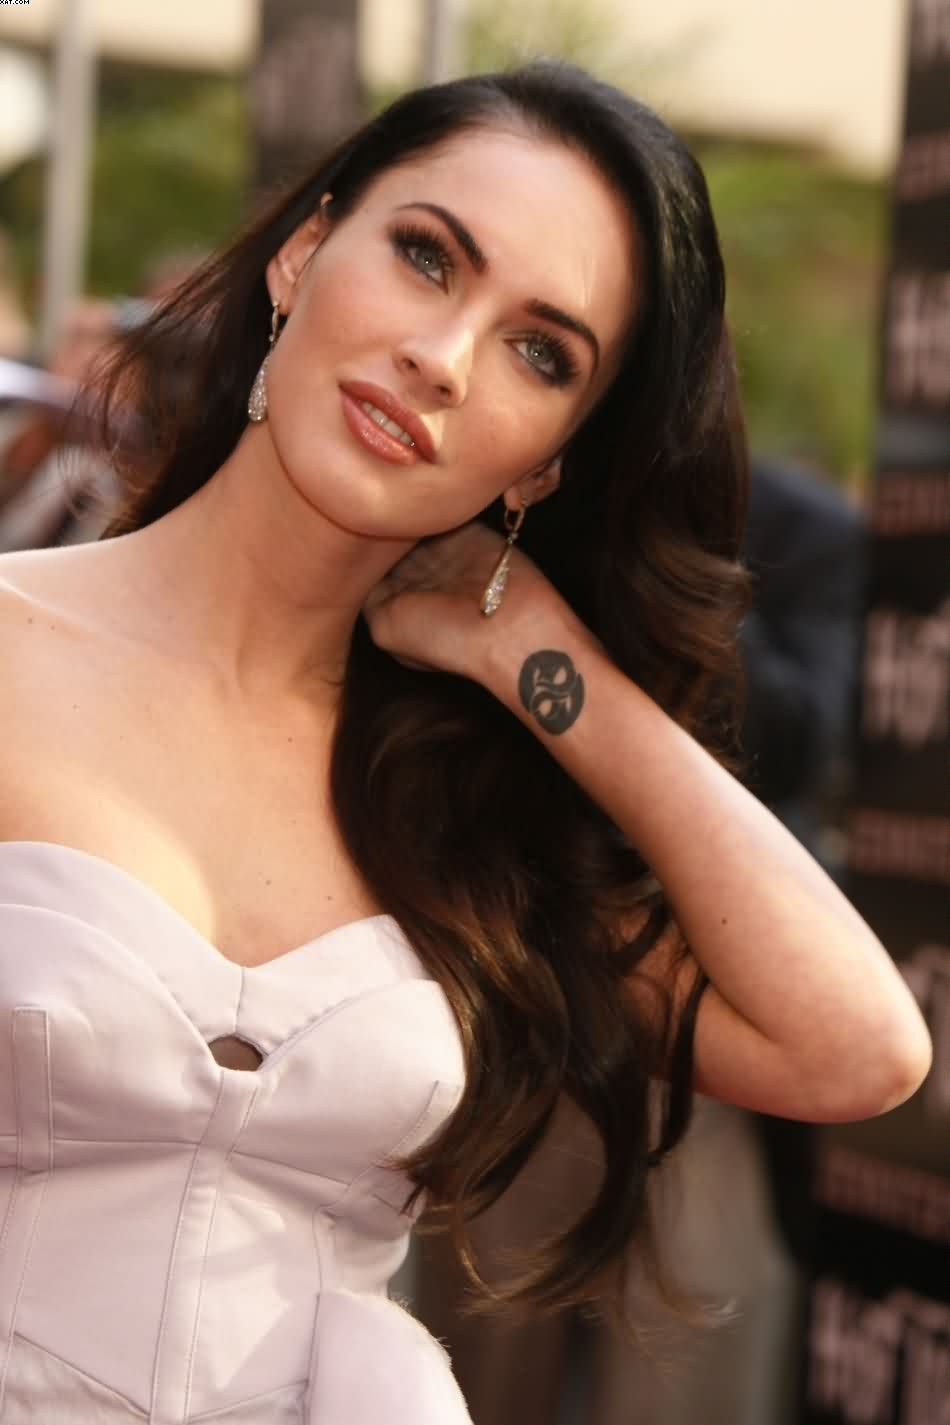 Megan Fox Wrist Tattoo For Women